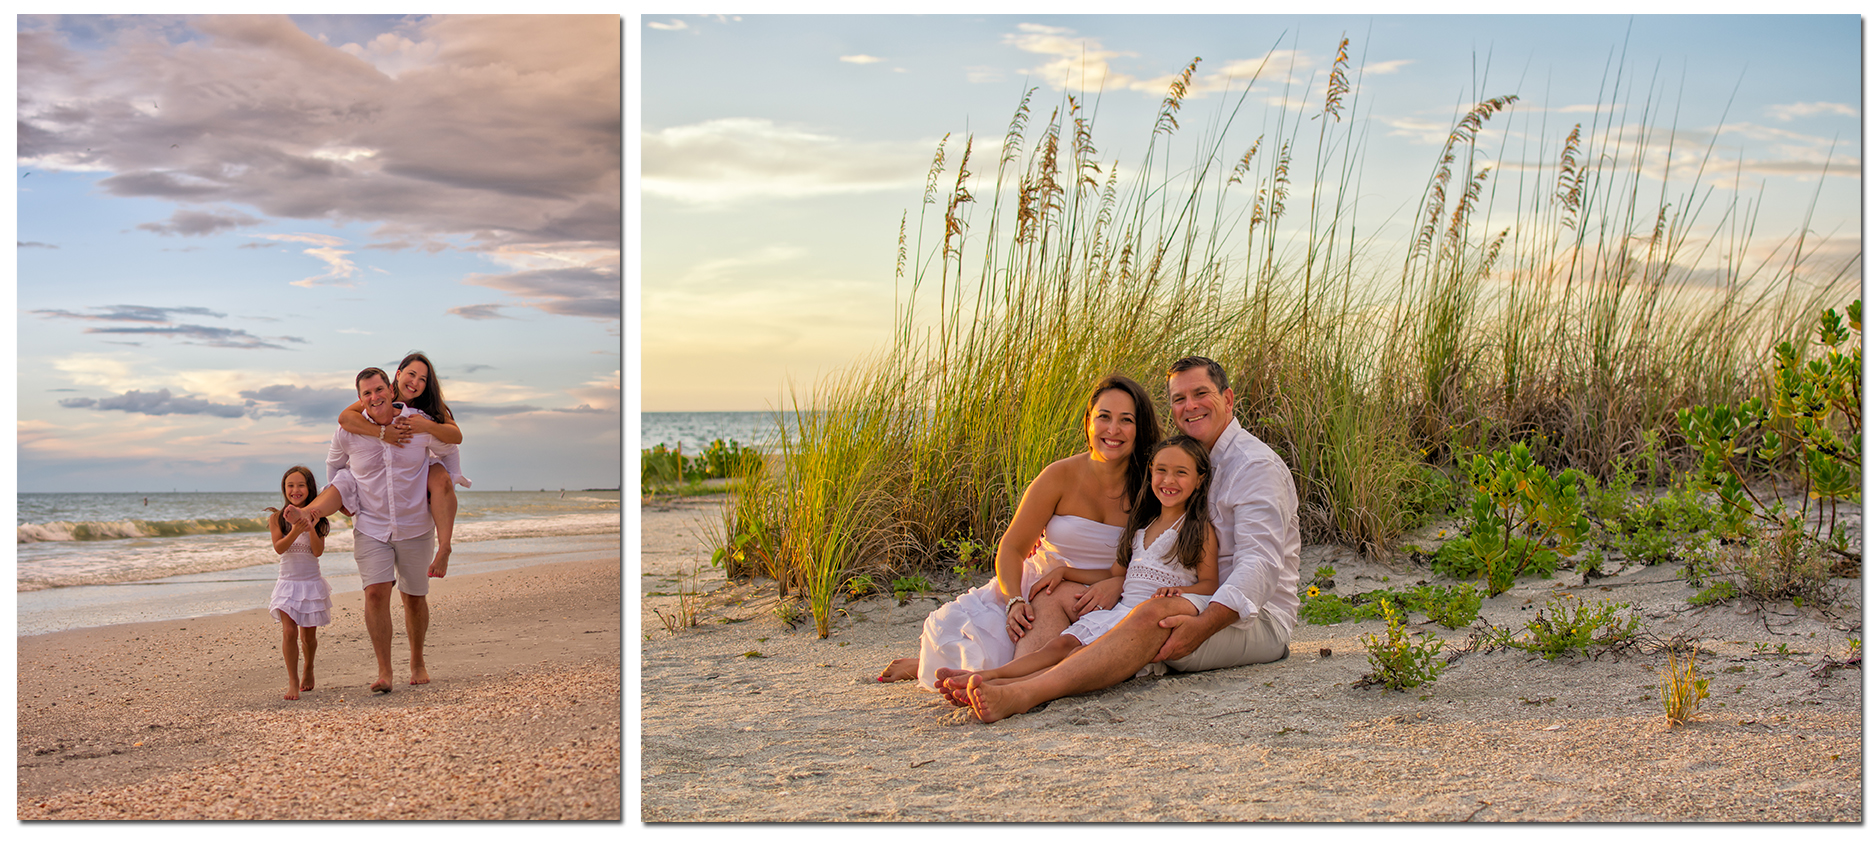 1-Hour Family Portraits at Clearwater Beach - Only $150.00!